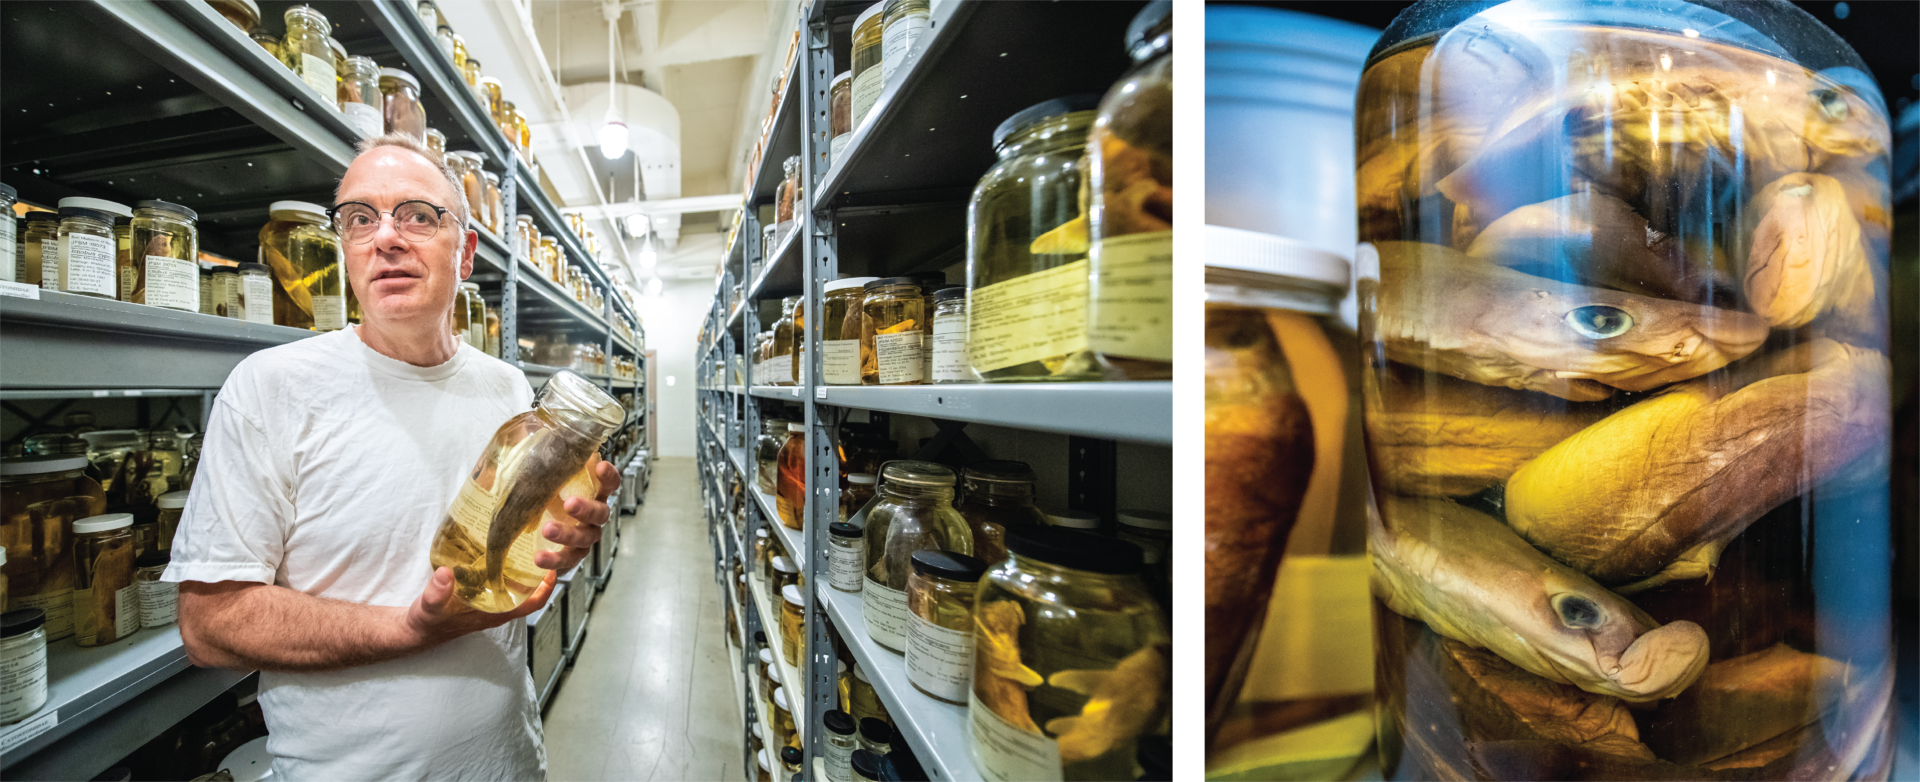 Curator of Fishes Andrew Simmons in the collections and a close up image of fish specimens in a jar